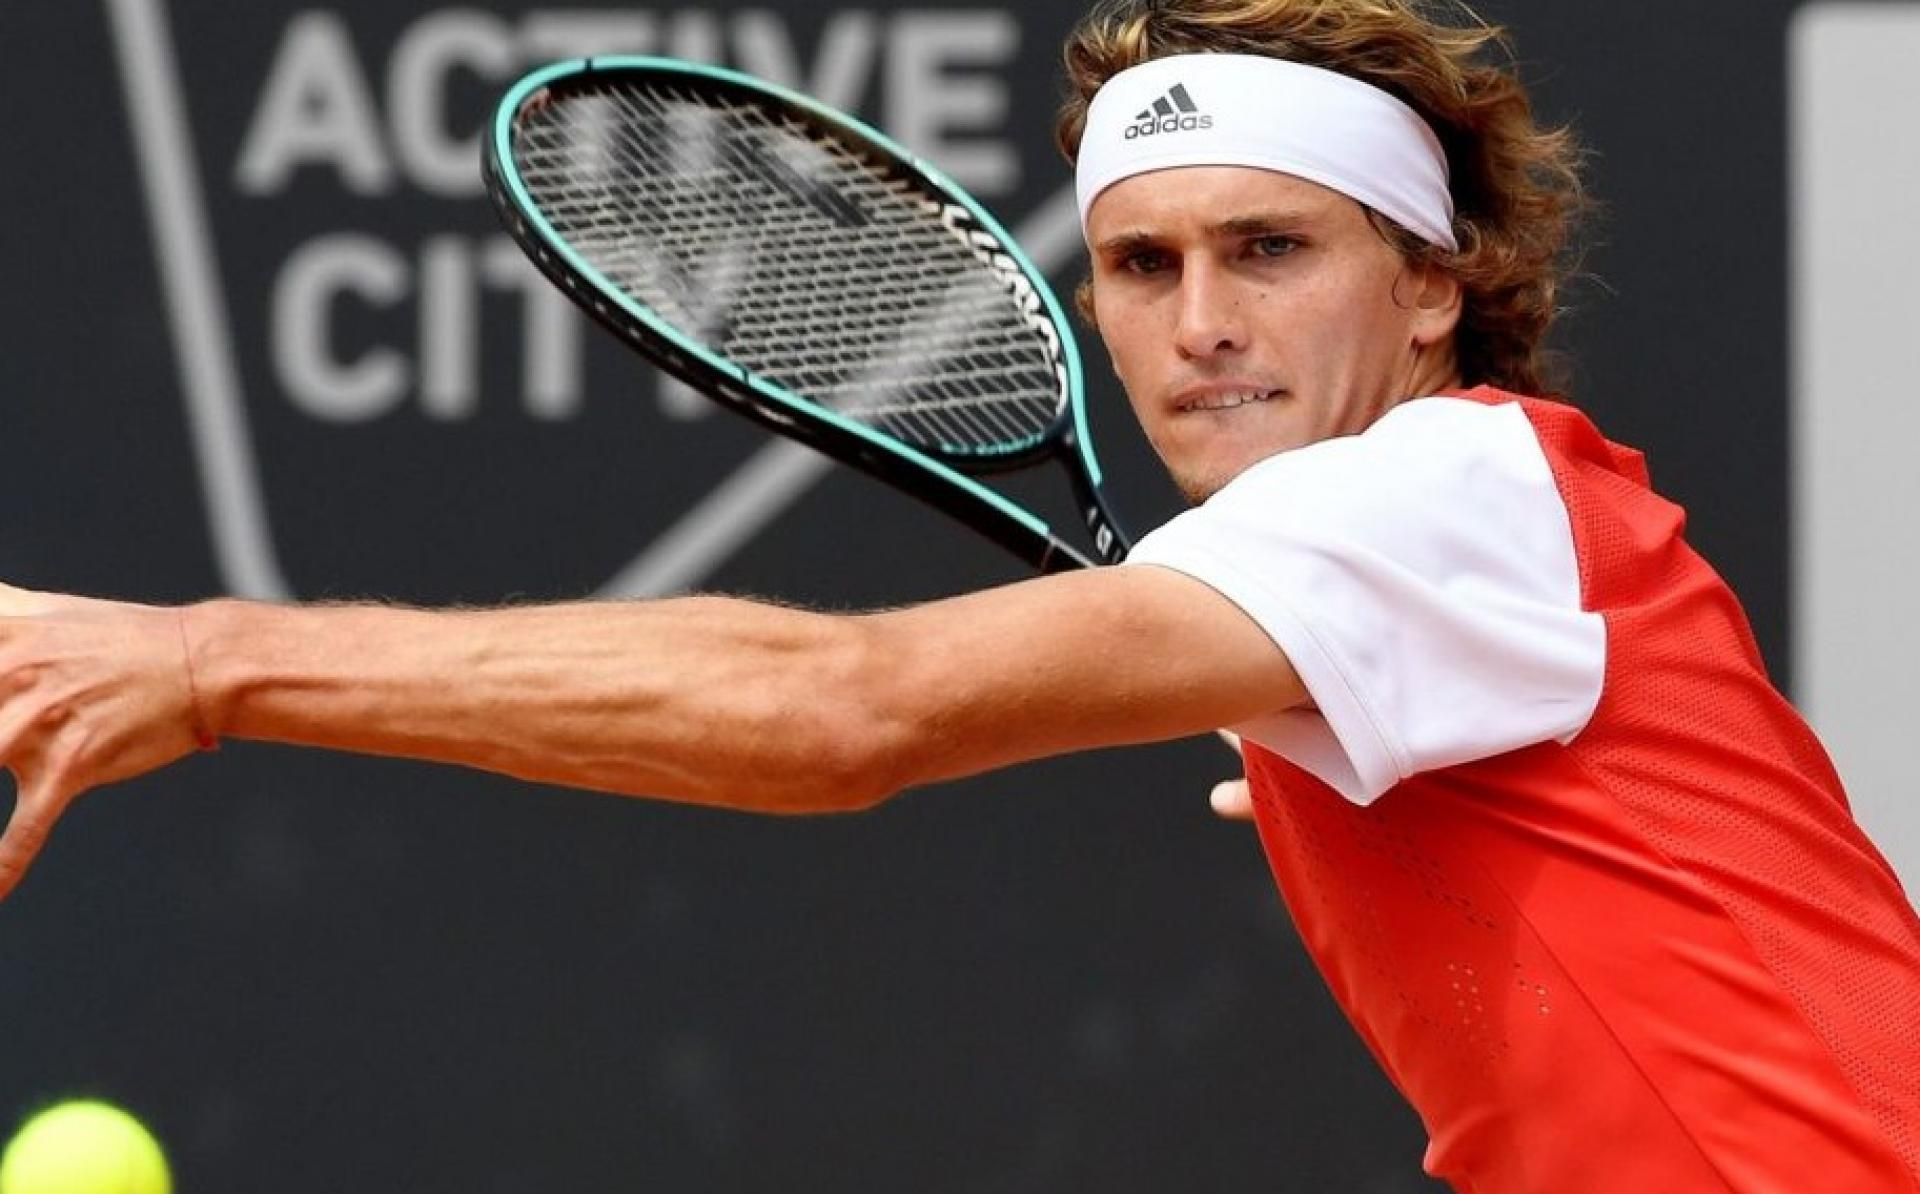 Alexander Zverev And Head To Heads A Worrying Statistic